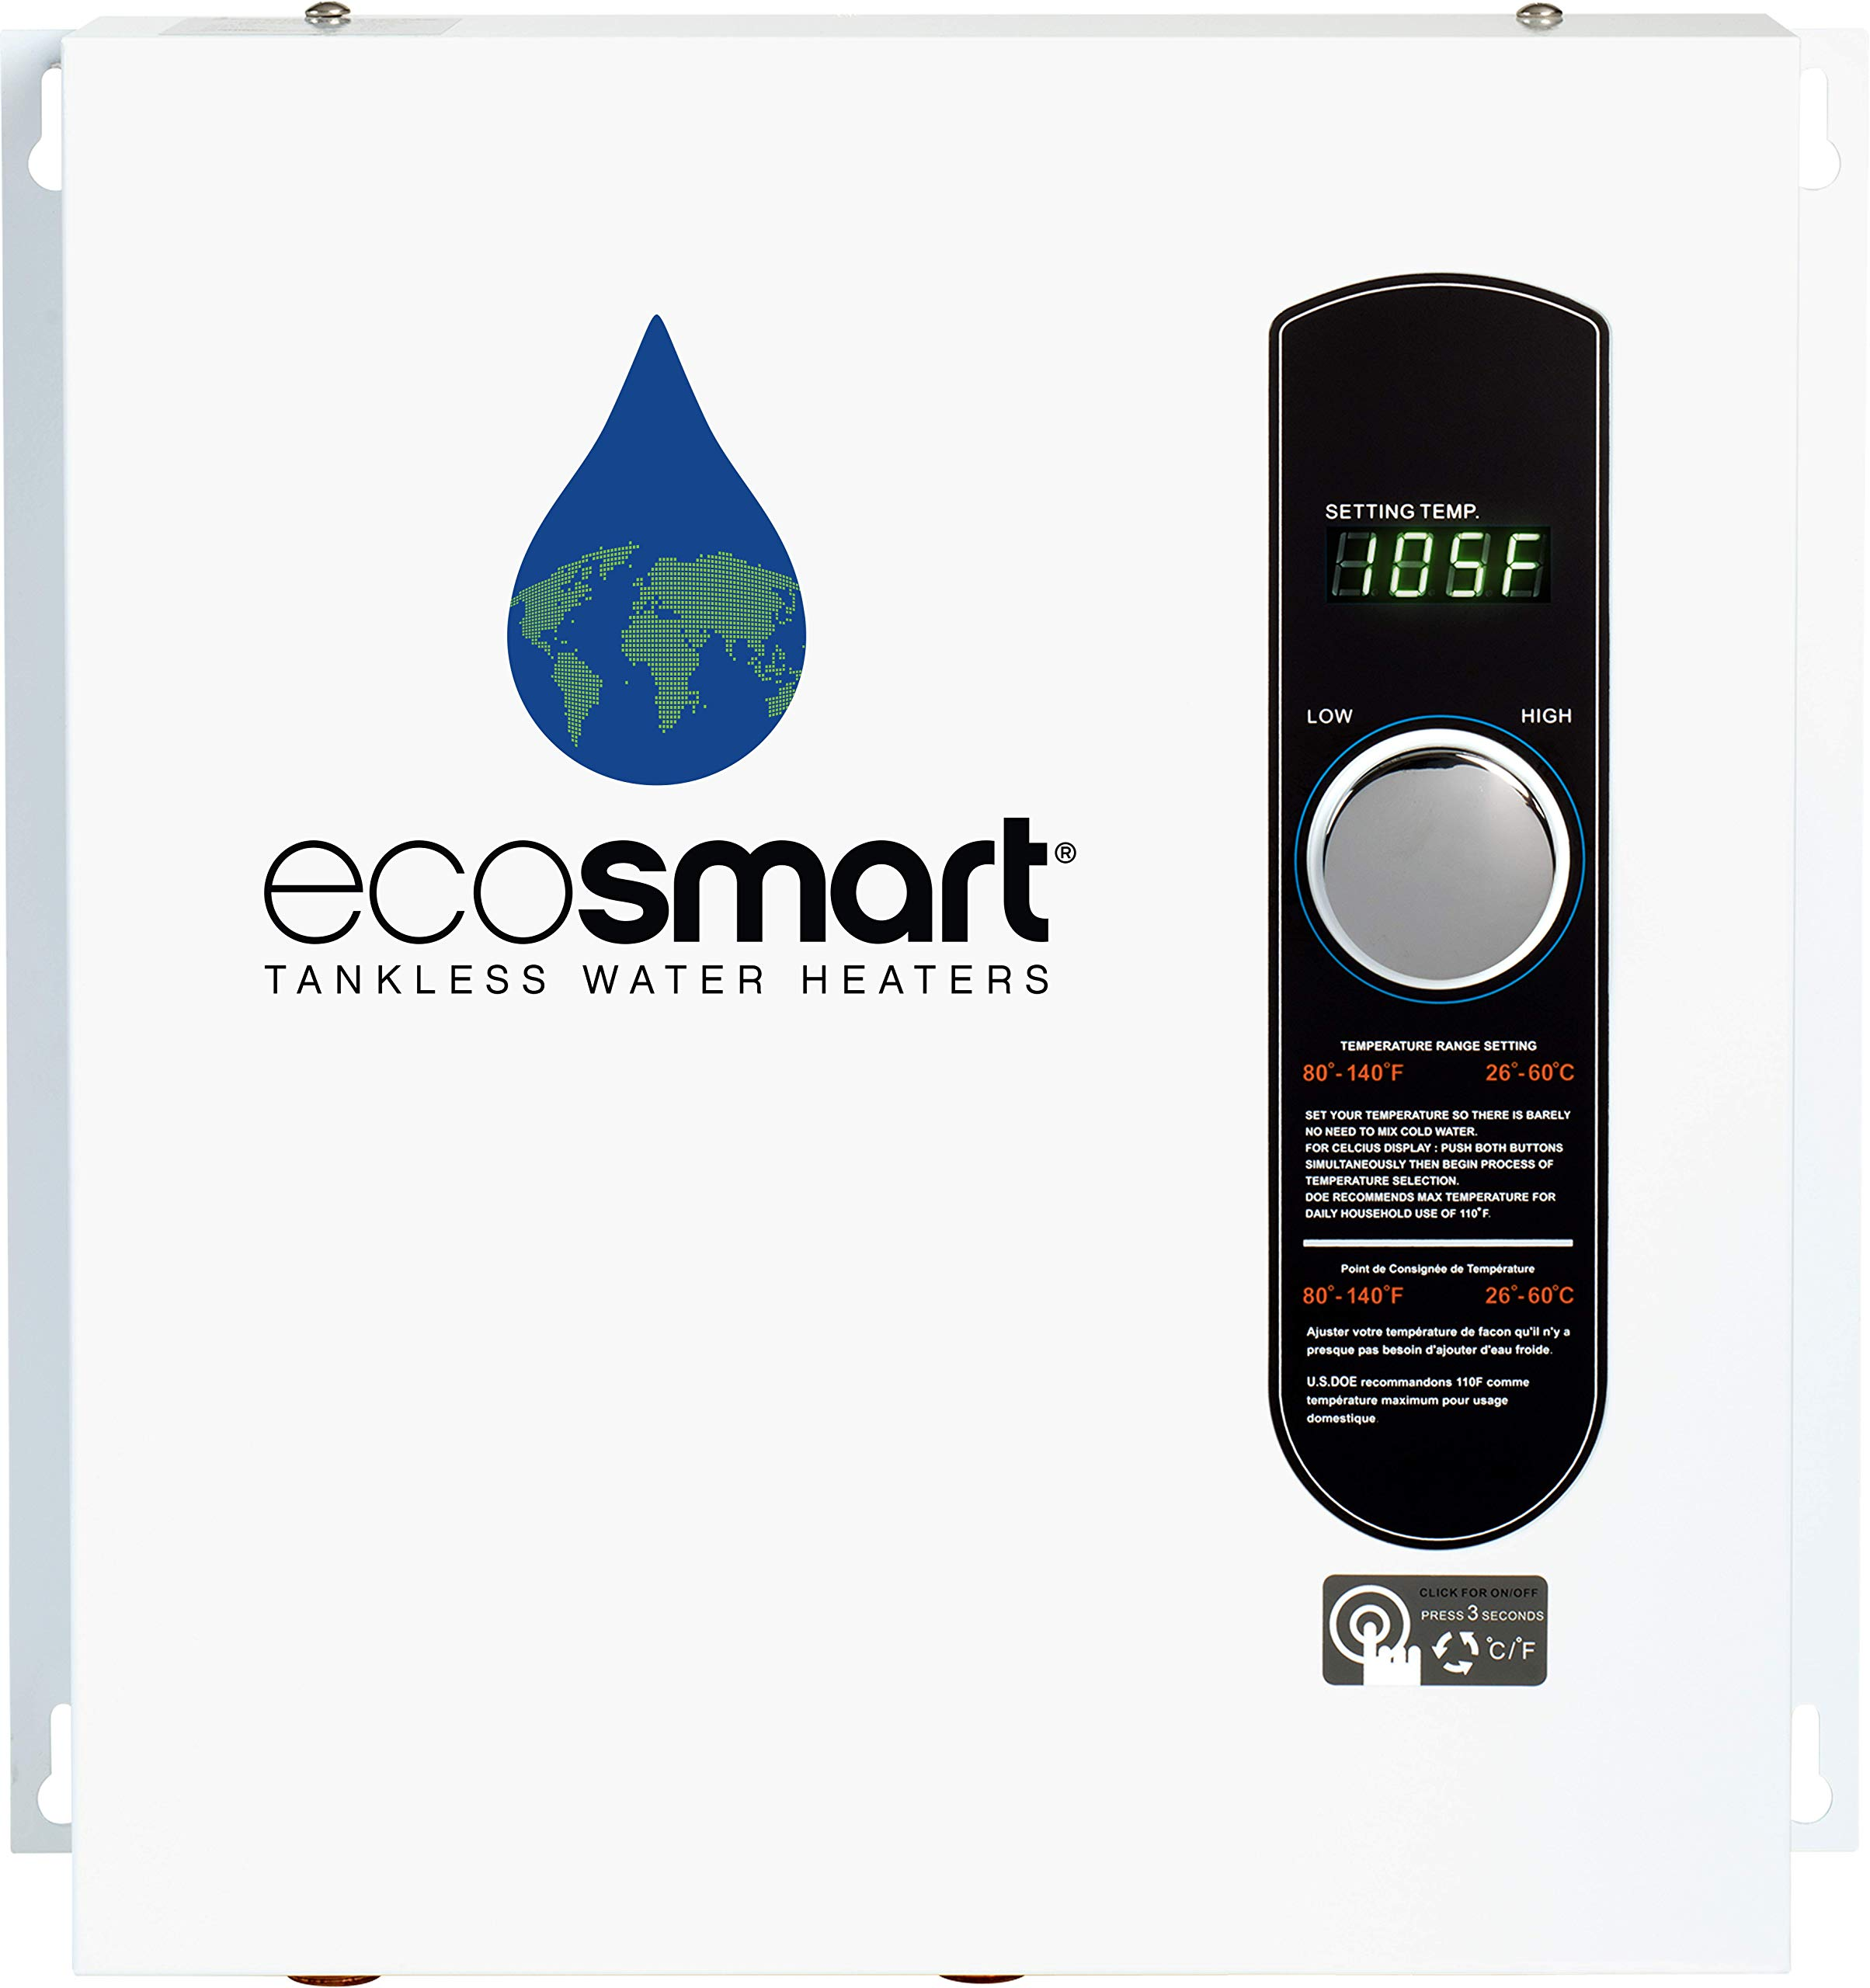 EcoSmart ECO 27 Electric Tankless Water Heater, 27 KW at 240 Volts, 112.5 Amps with Patented Self Modulating Technology by Ecosmart